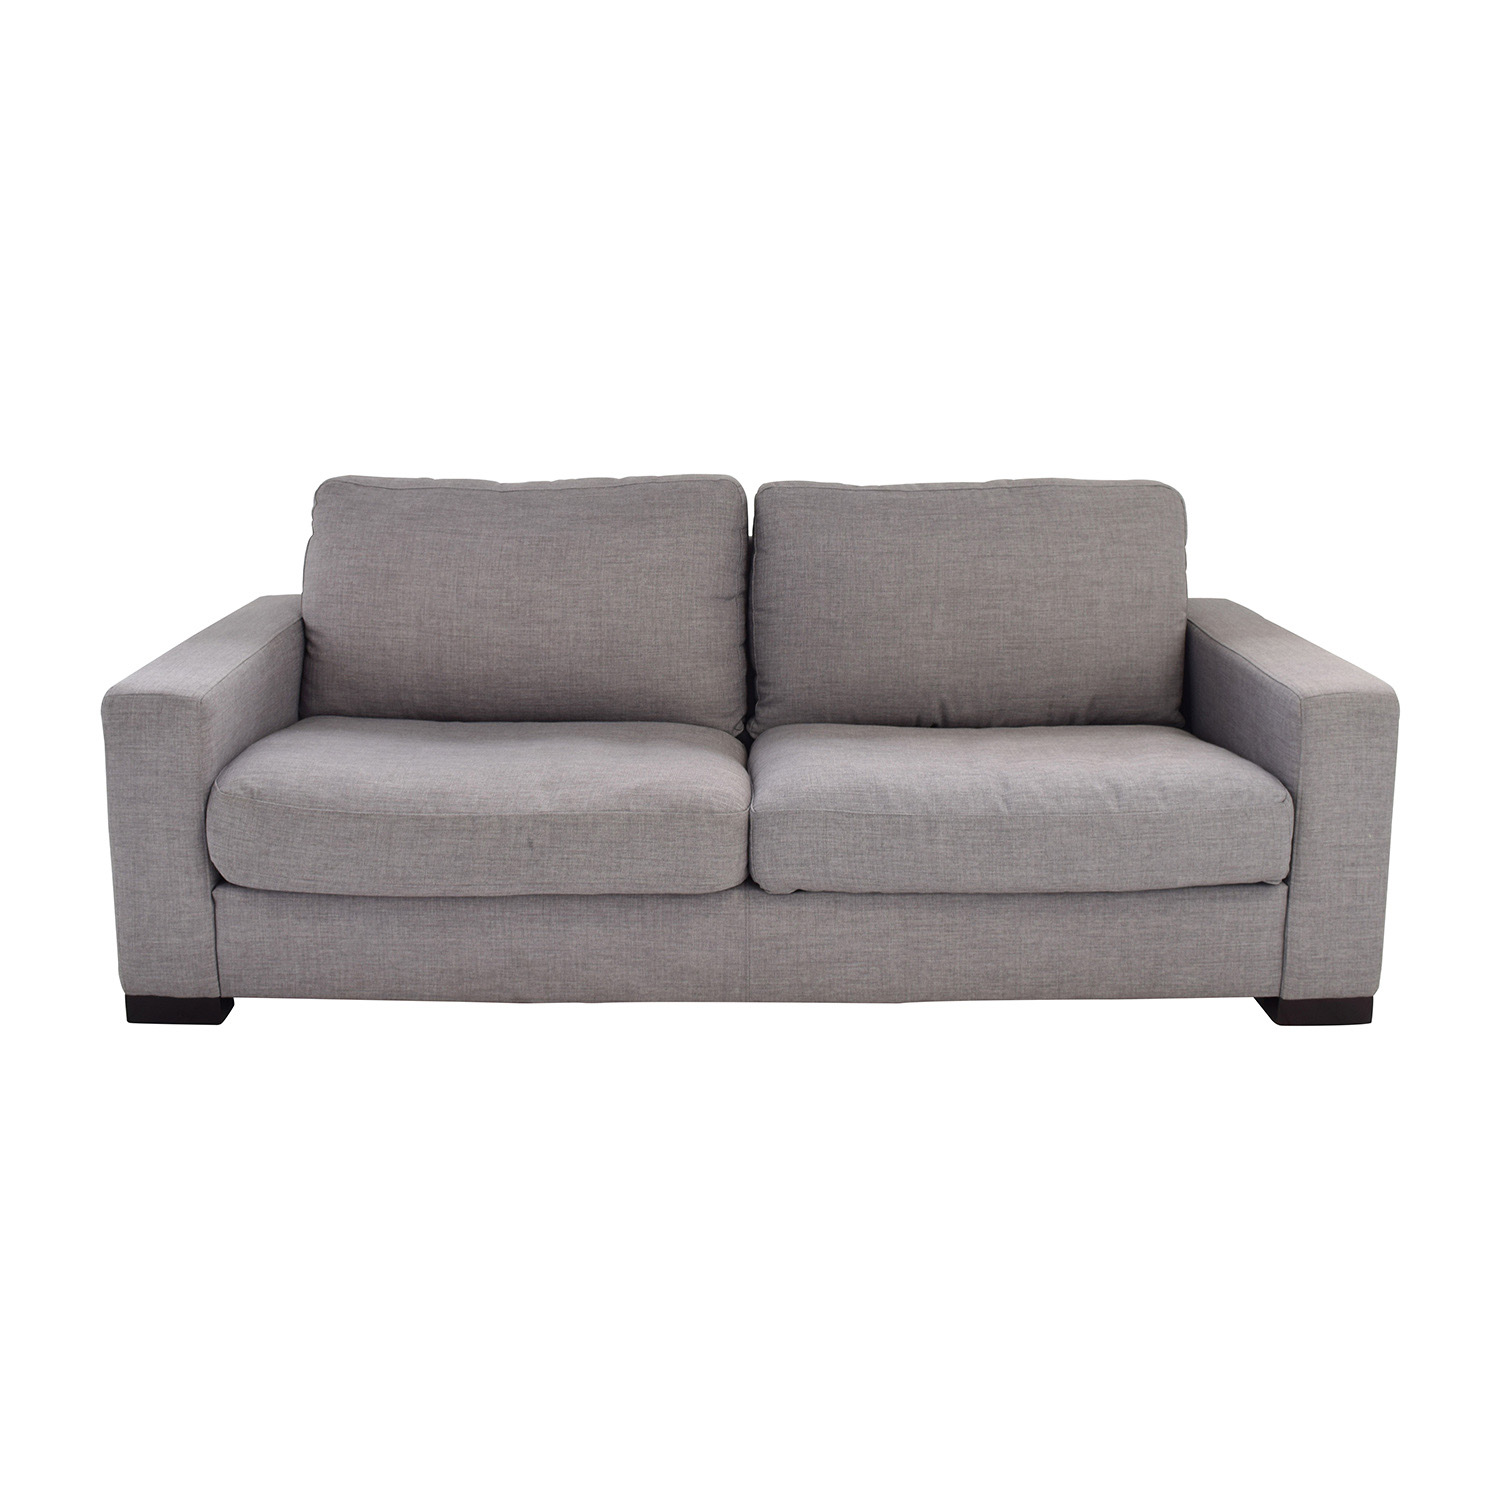 YLIVING YLIVING Cooper Grey Sofa discount